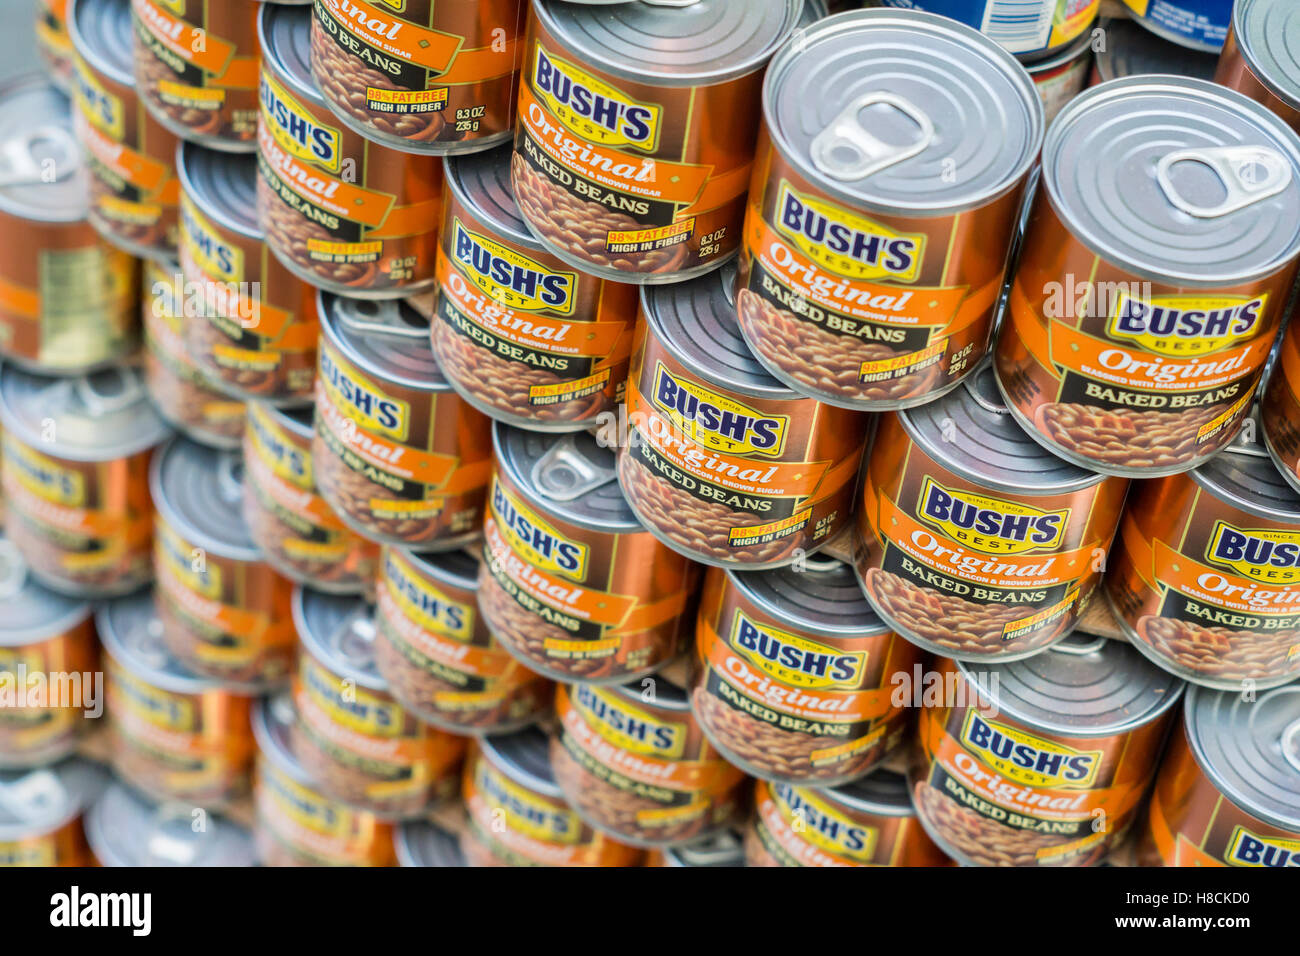 A display of canned Bush's baked beans in New York on Friday, November 4, 2016. (© Richard B. Levine) - Stock Image